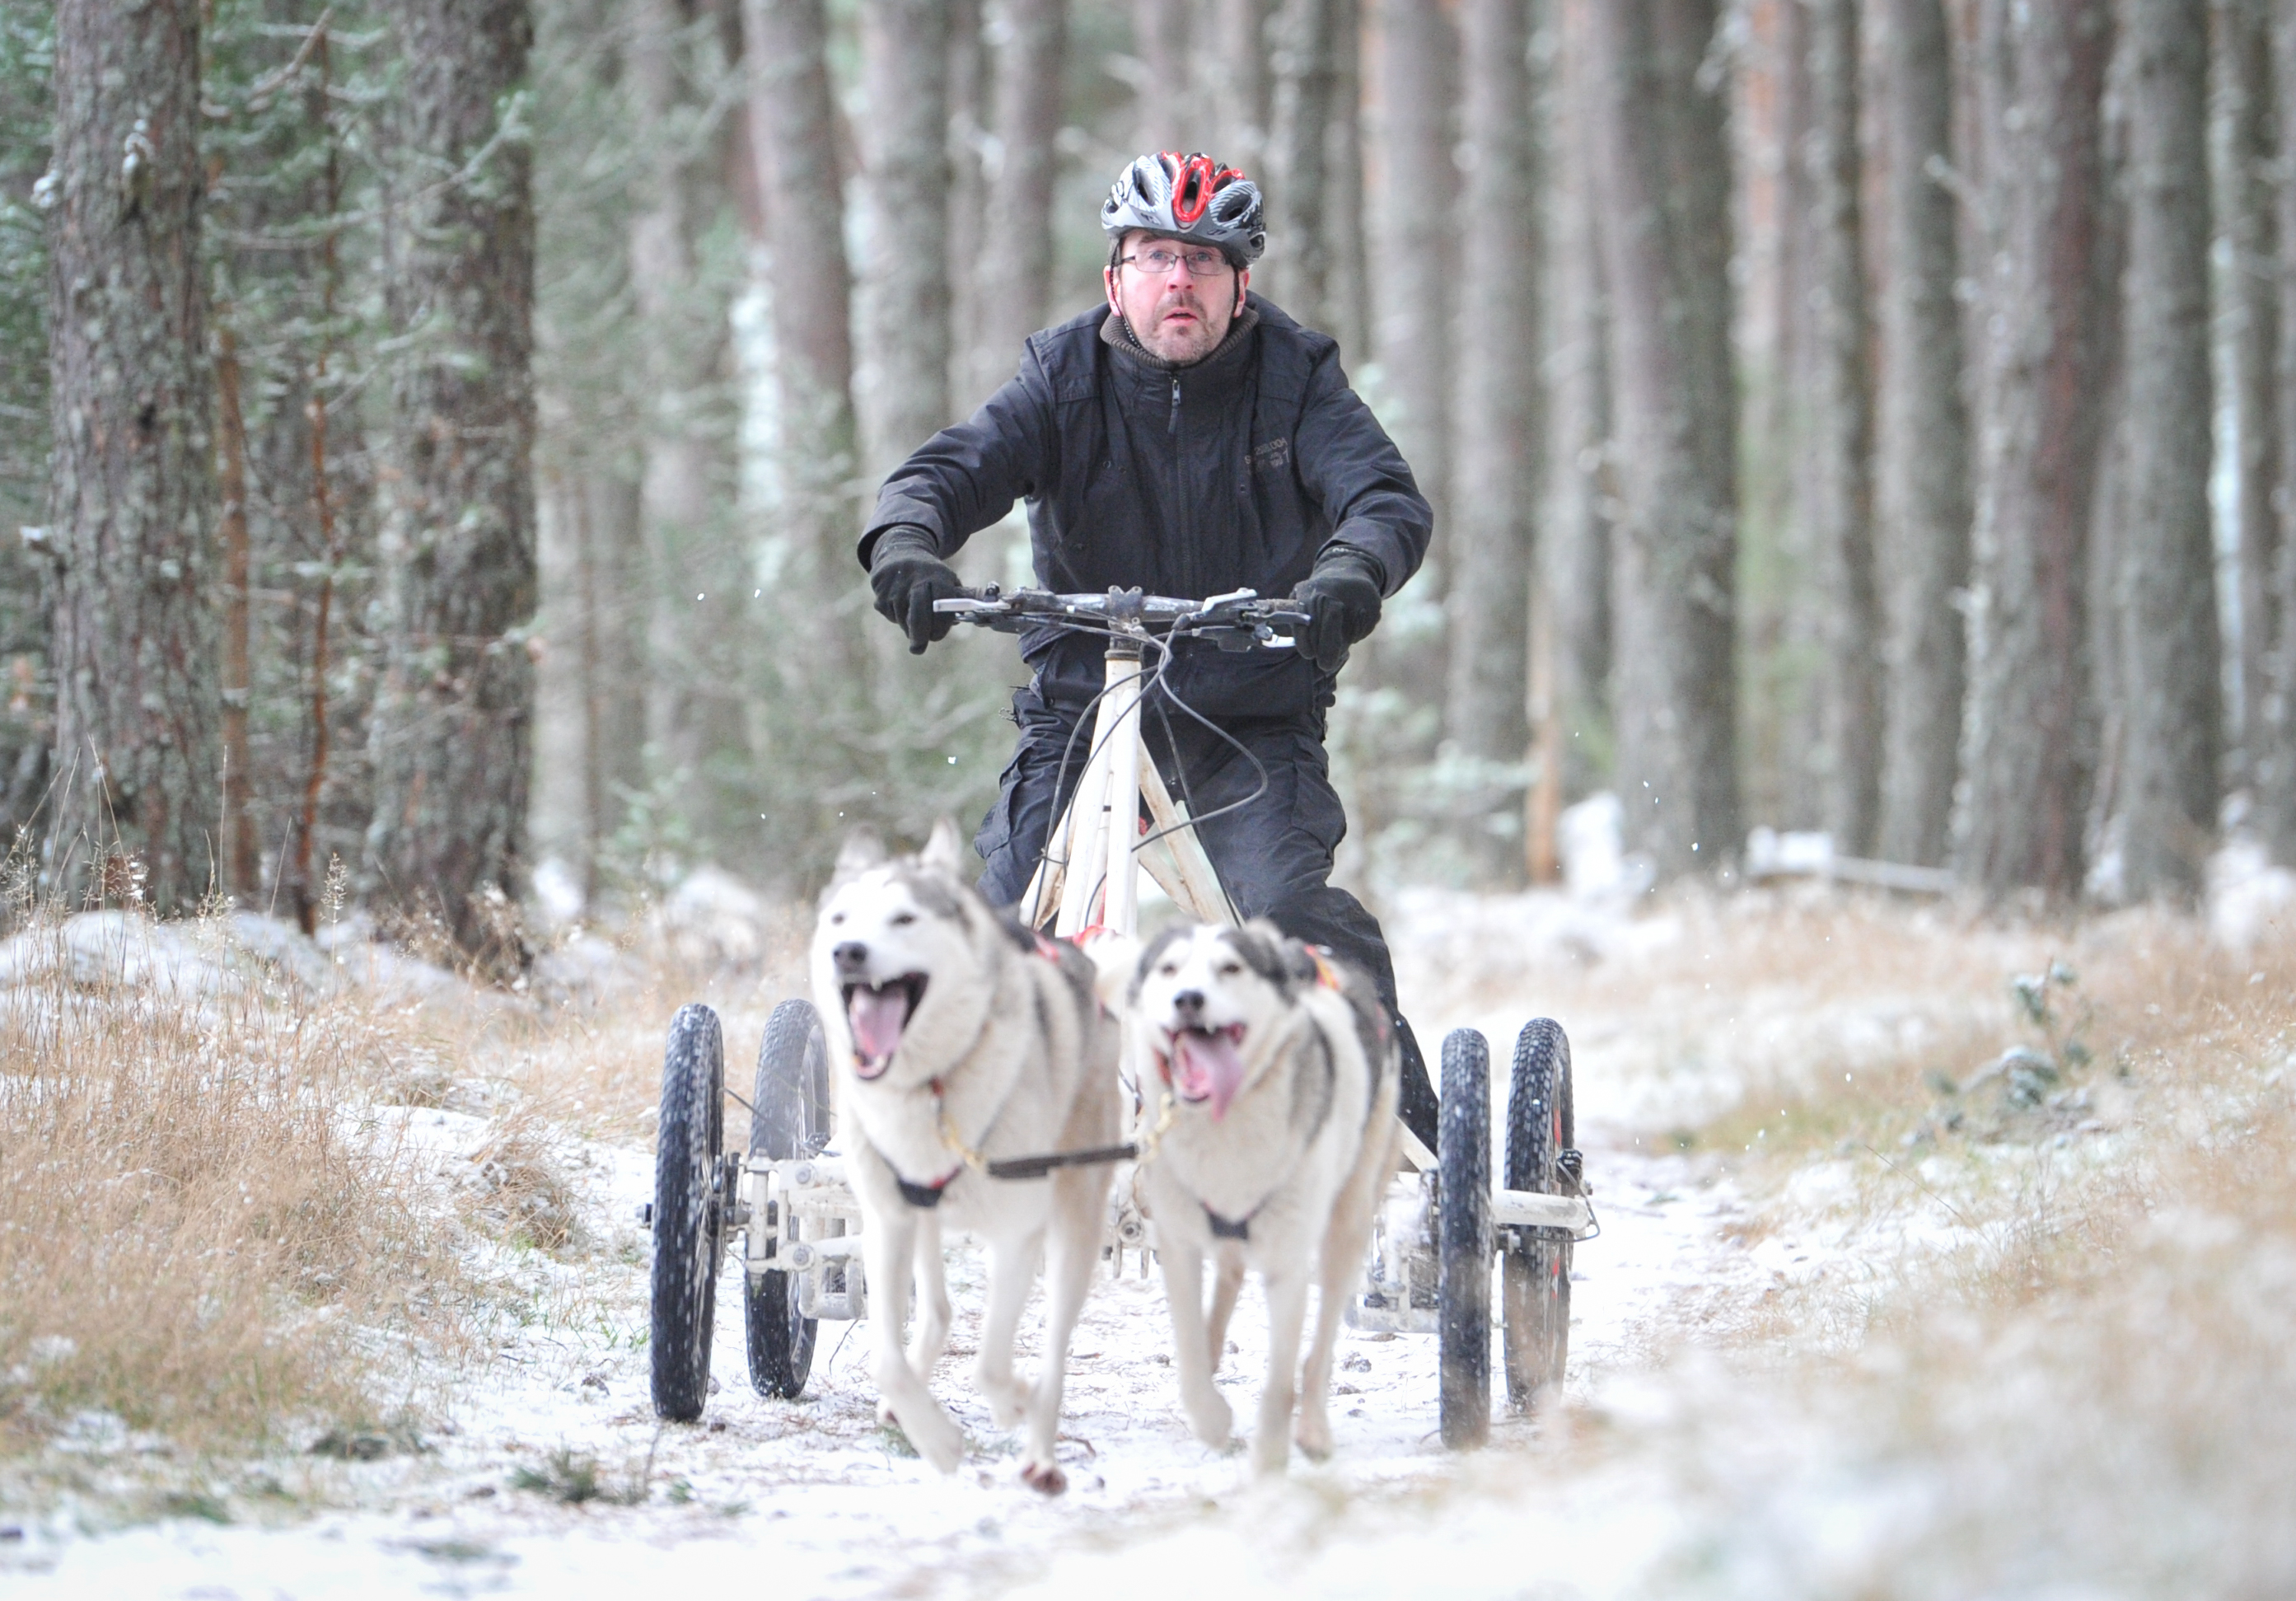 Alistair Munro is pictured on a sled provided by Team Coldfeet.